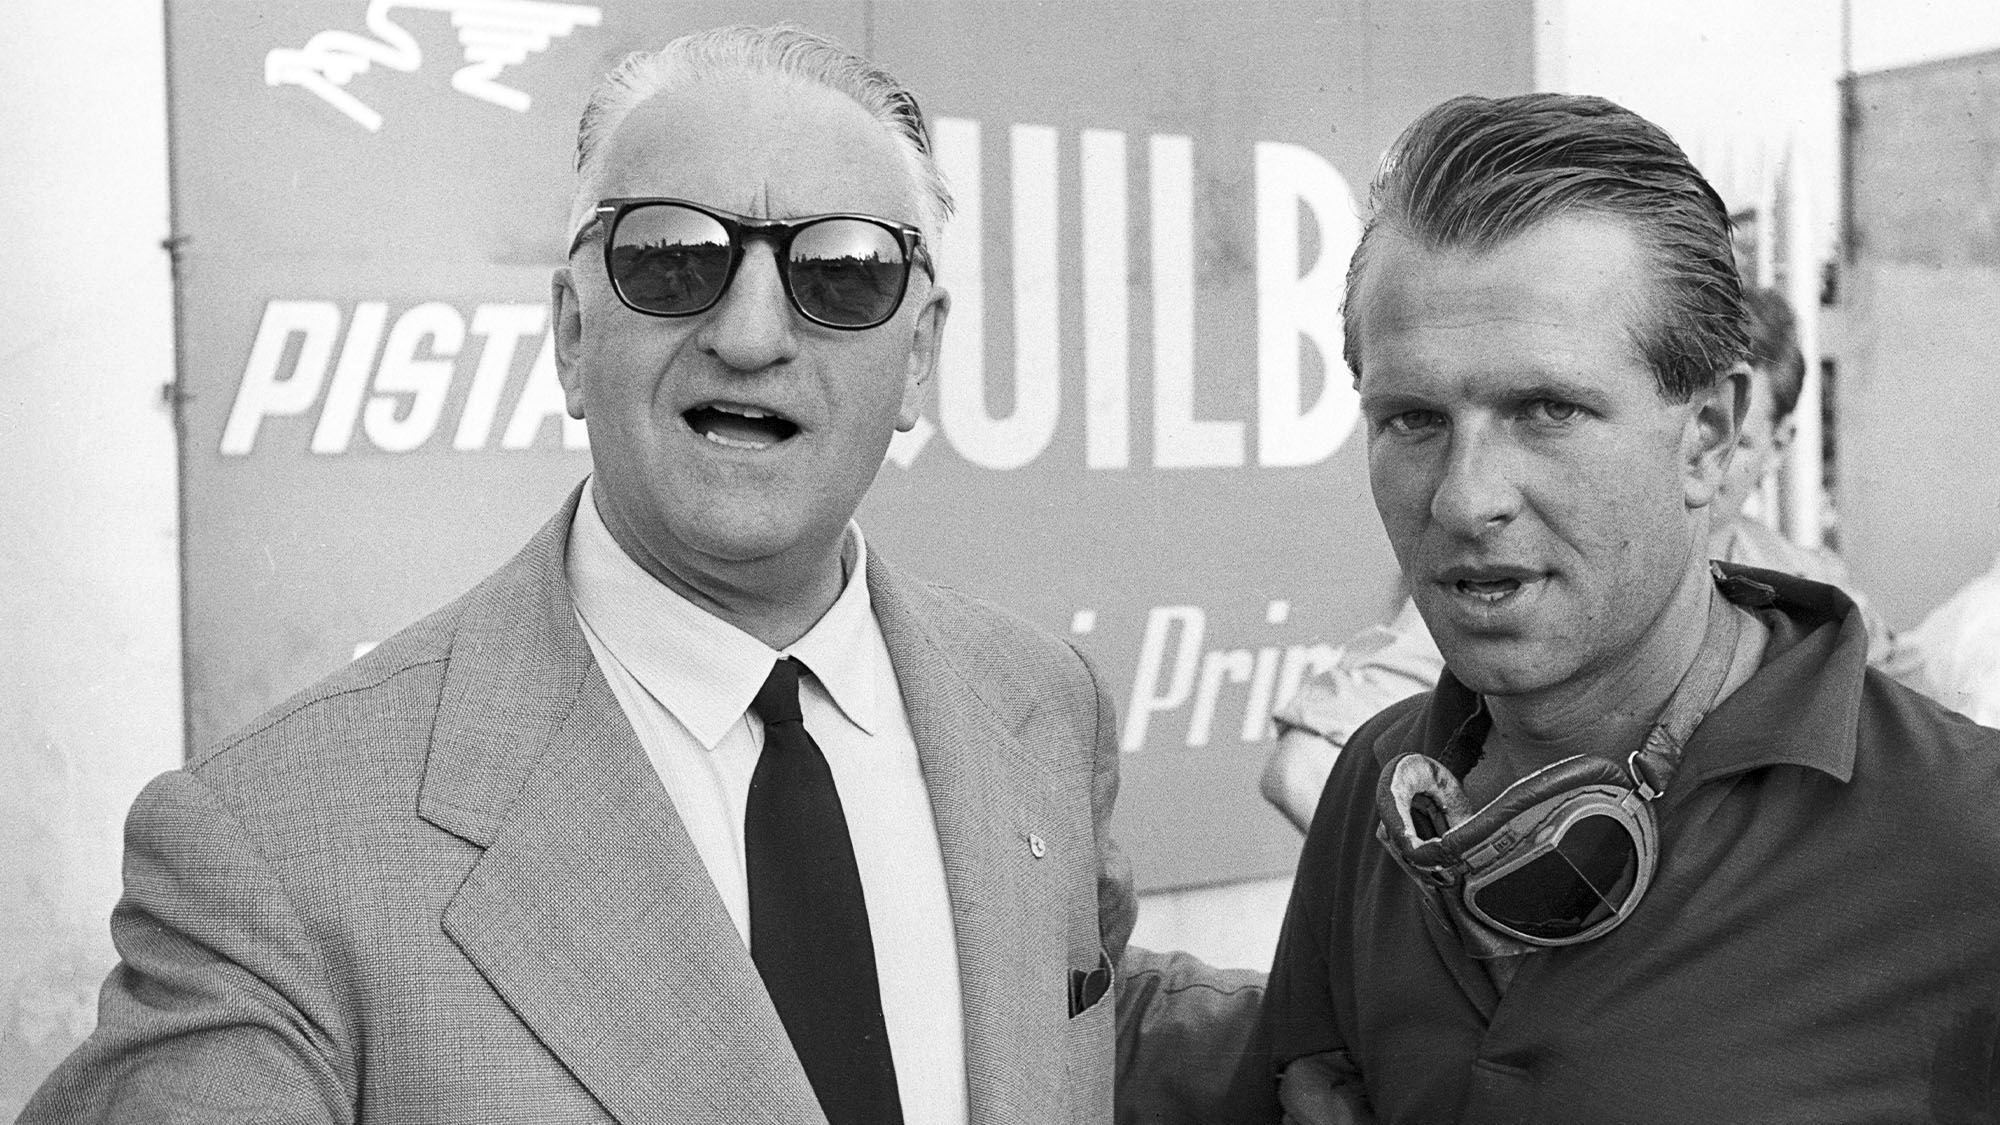 Enzo Ferrari, Peter Collins, Grand Prix of Italy, Monza, 02 September 1956. Enzo Ferrari and Peter Collins. (Photo by Bernard Cahier/Getty Images)